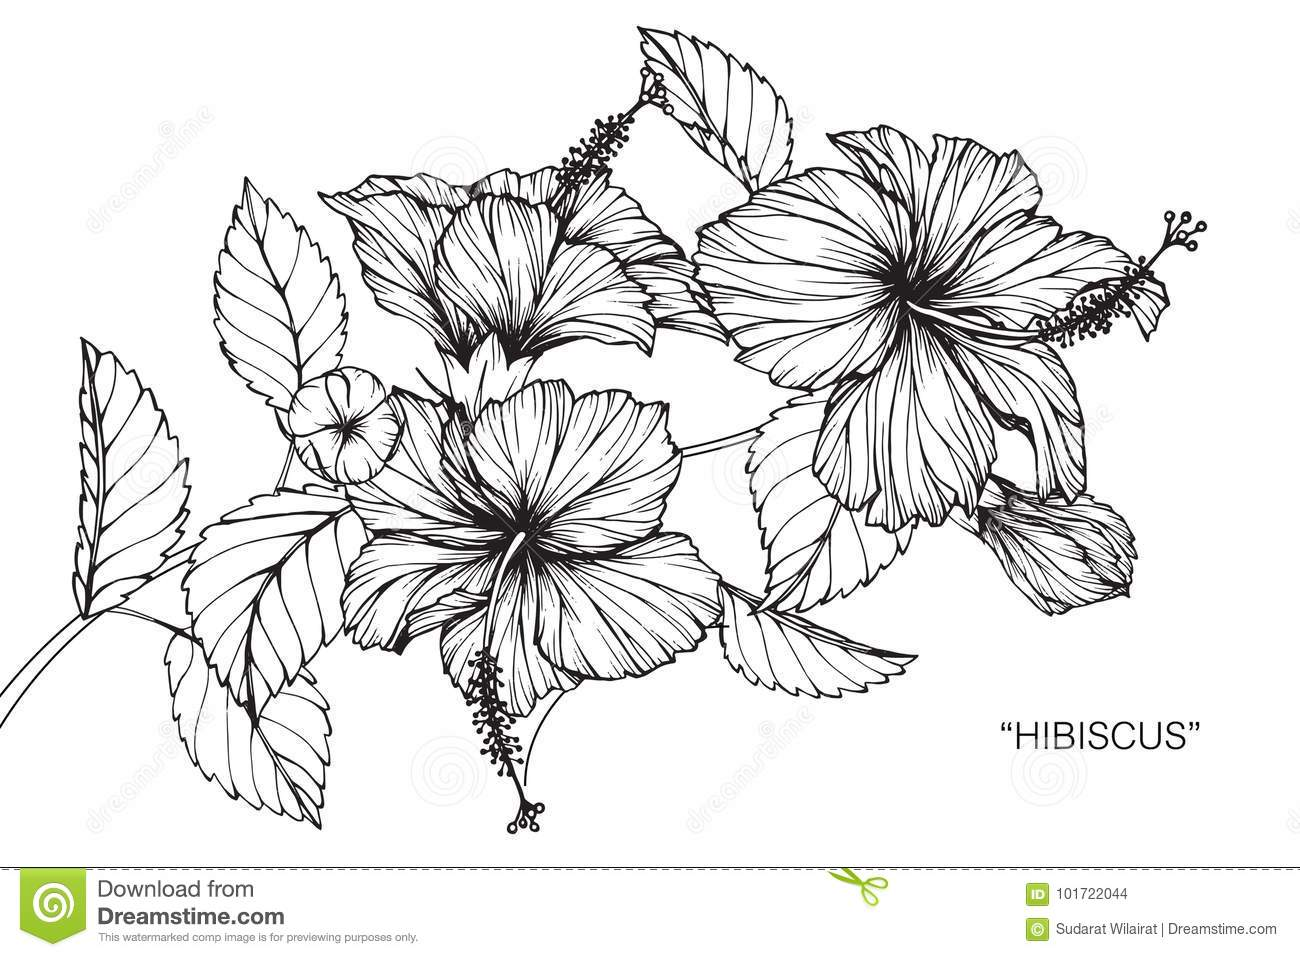 Hibiscus flower drawing and sketch stock illustration hibiscus flower drawing and sketch with line art on white backgrounds izmirmasajfo